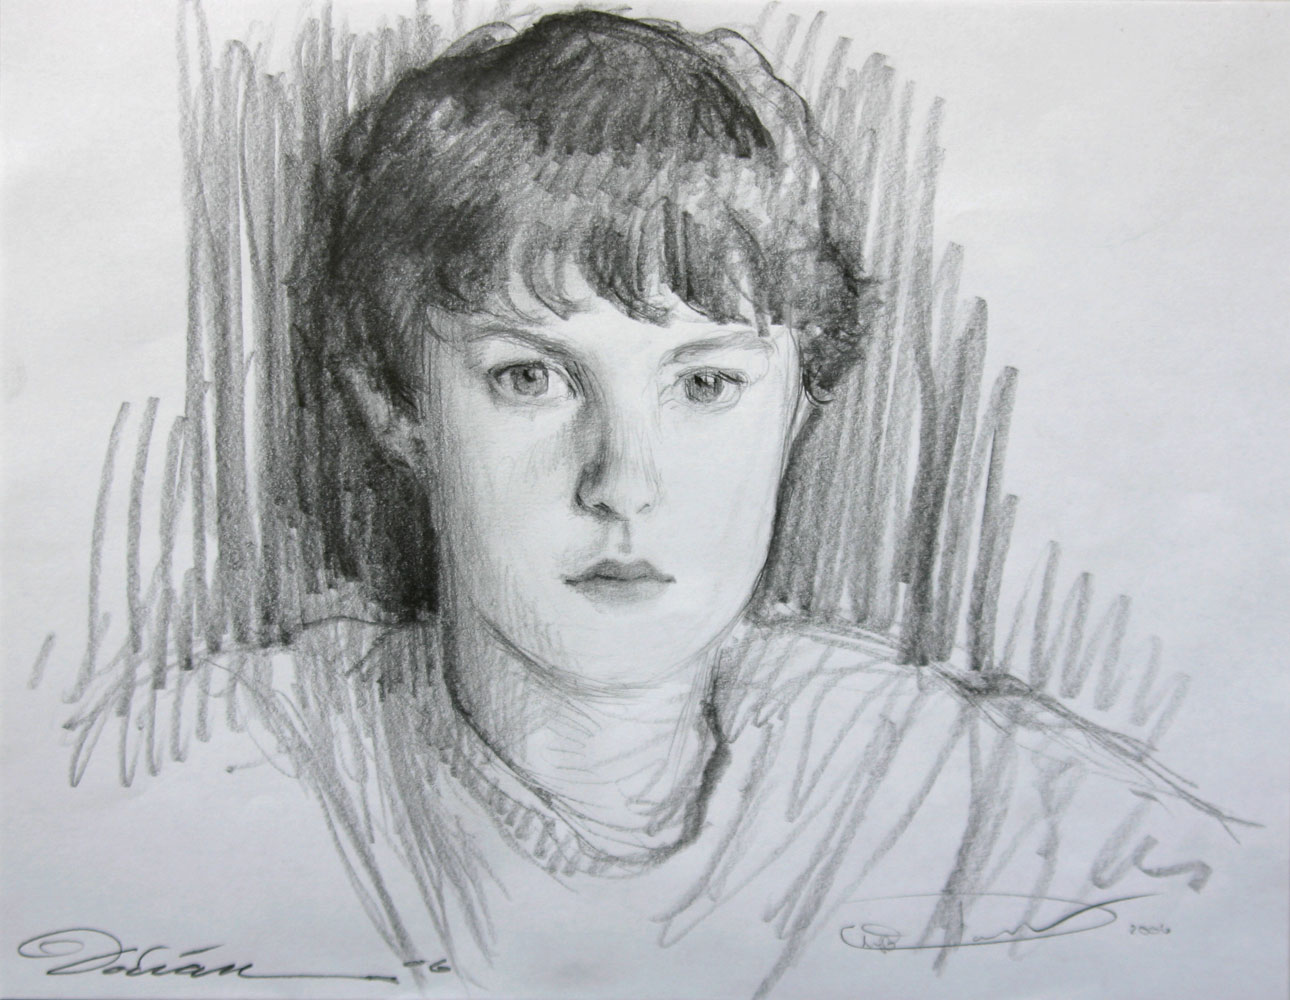 Pencil_Sketches_34.jpg